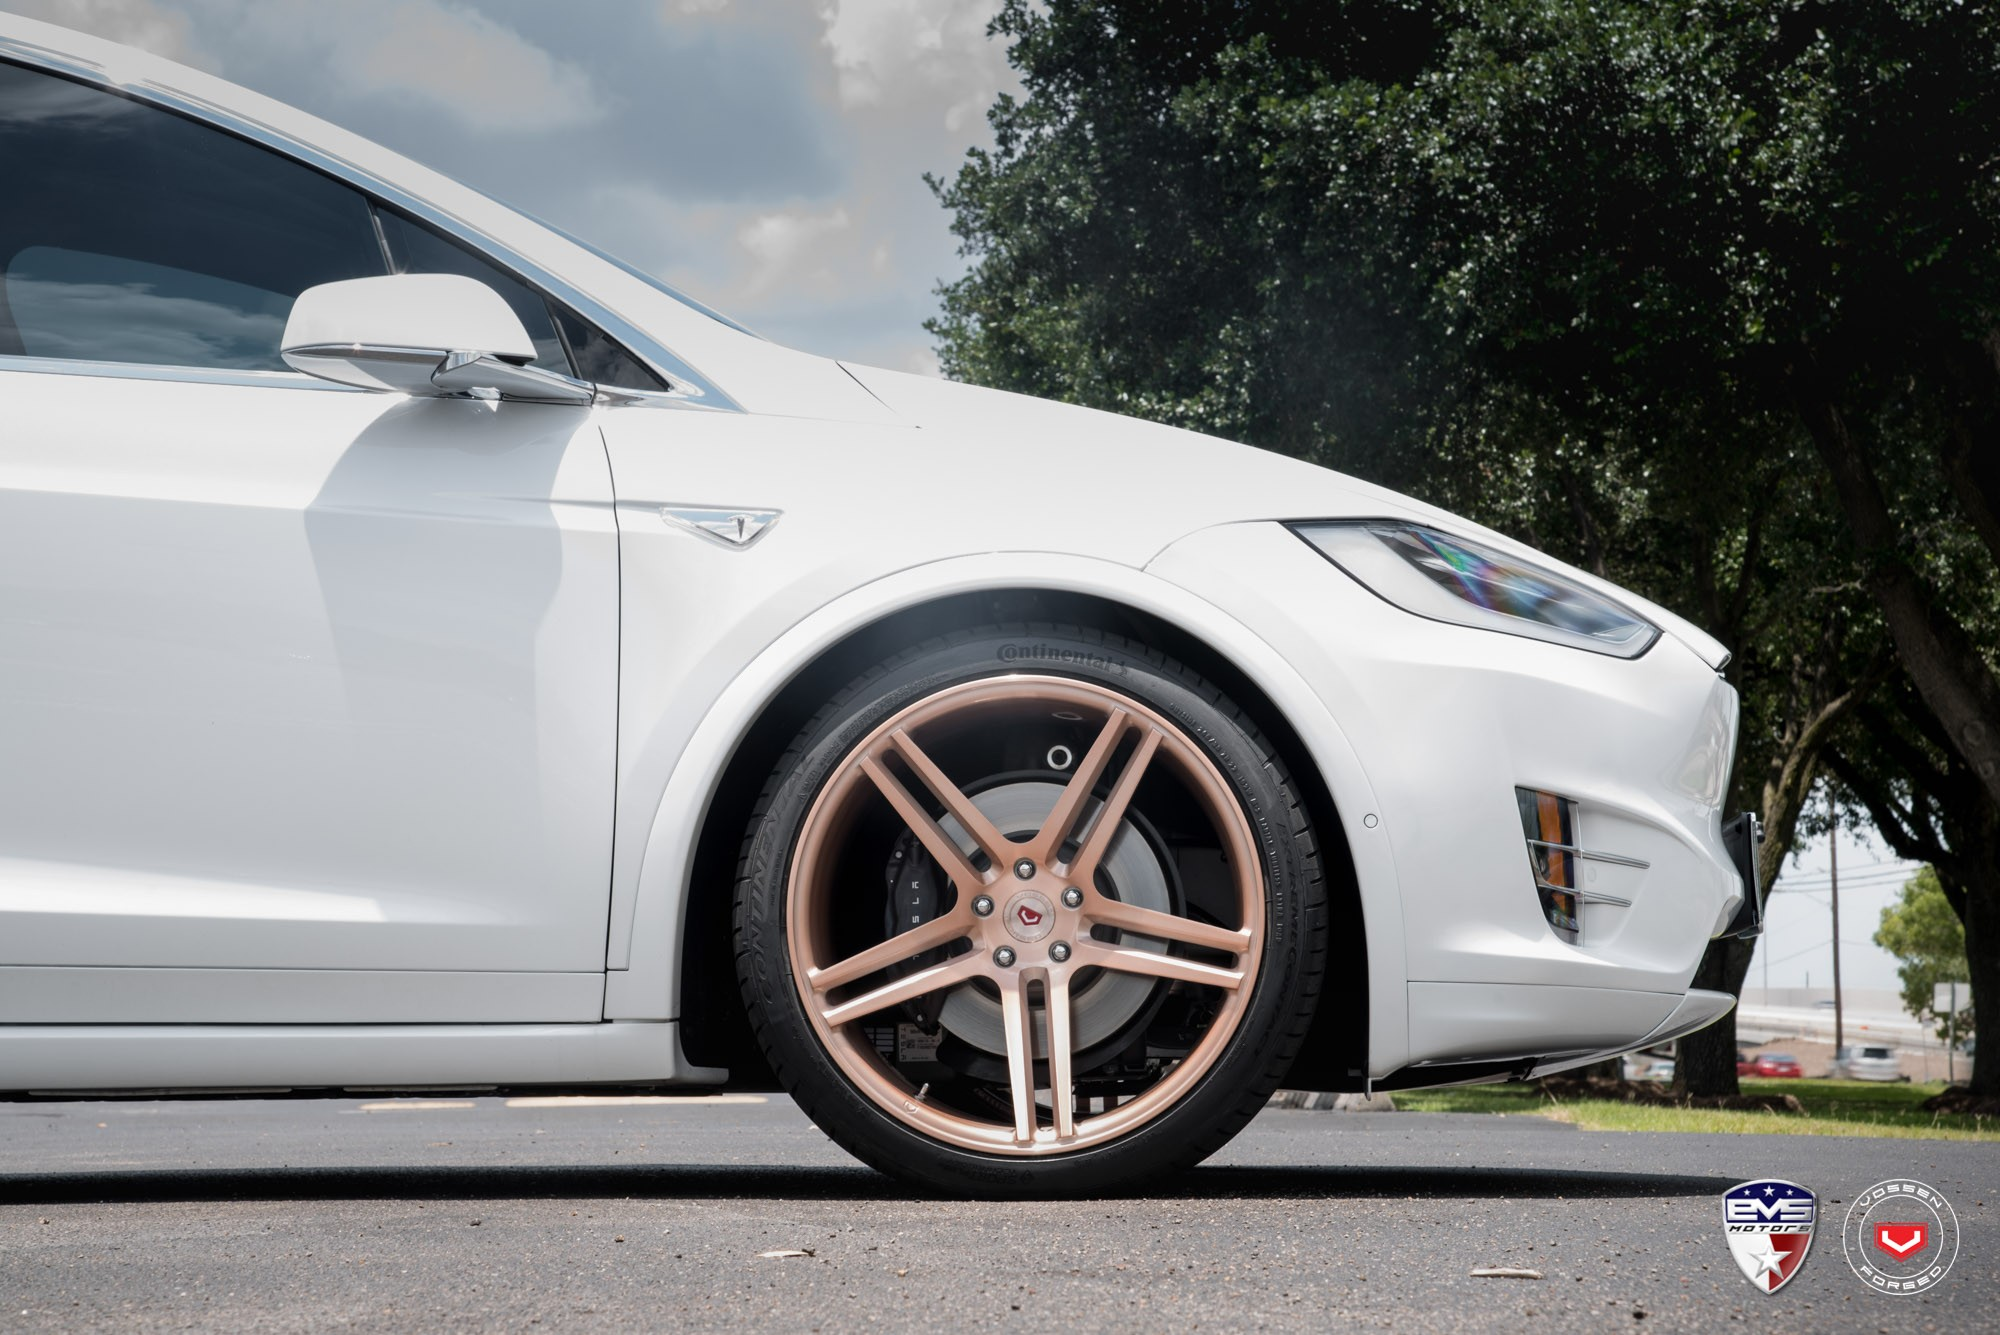 Off Lease Auto >> White Tesla Model X Sits on Gold Vossen Forged Wheels - autoevolution